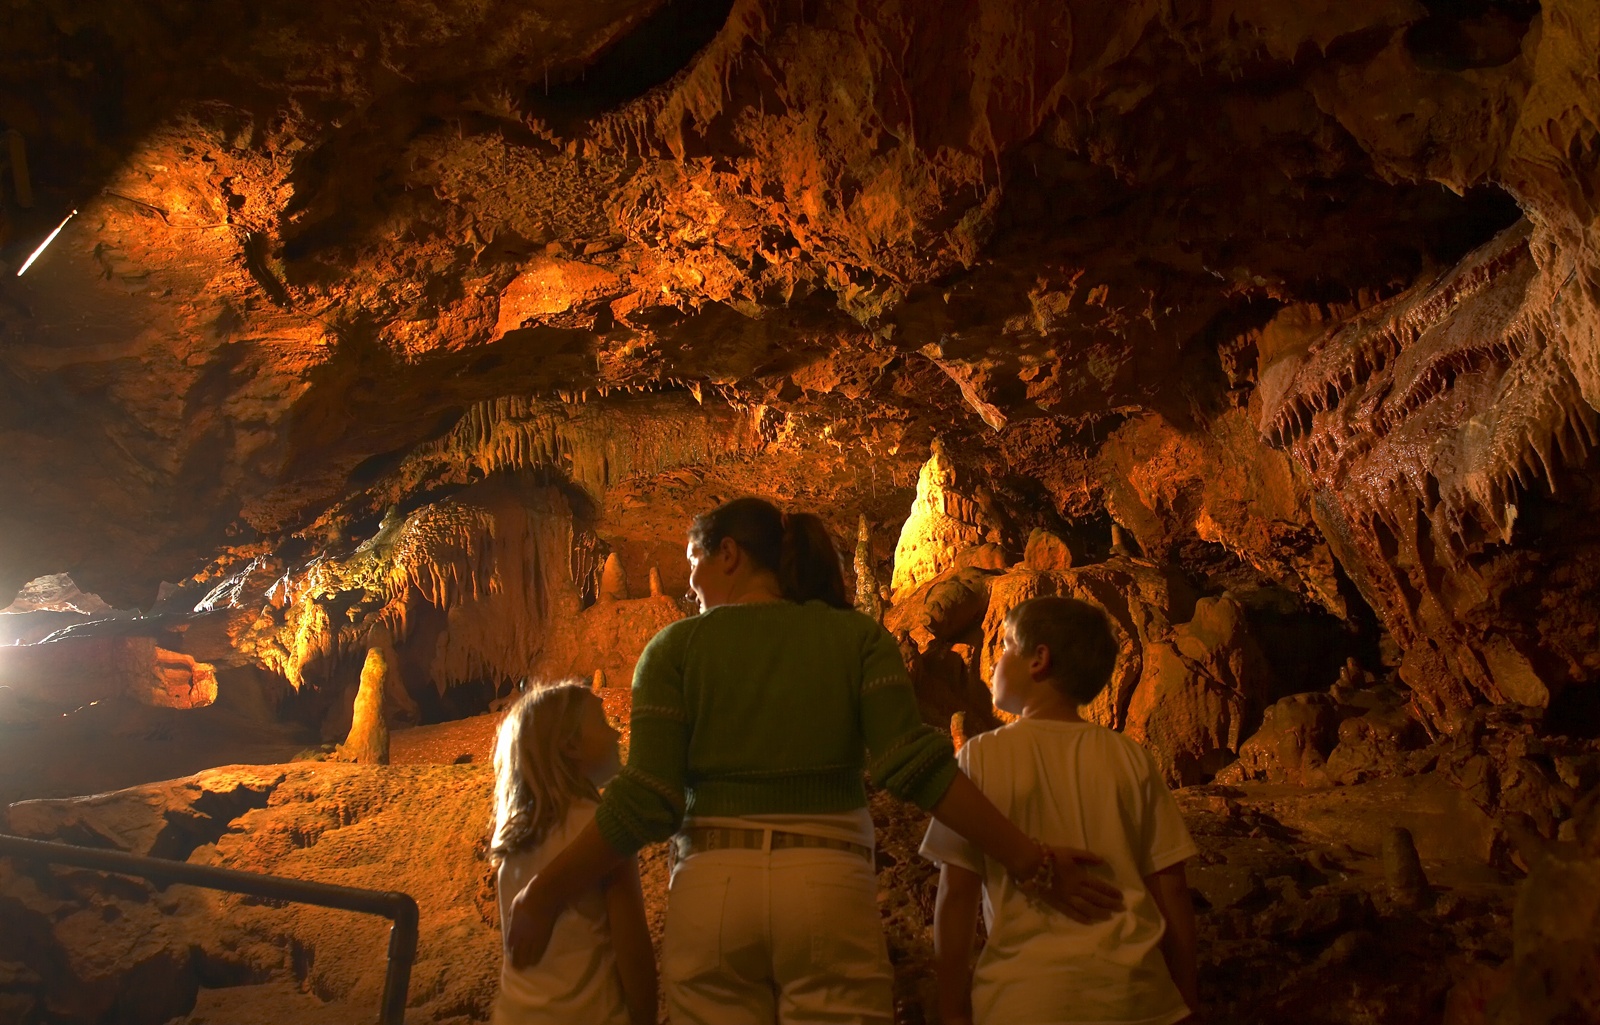 Kent's Cavern in the South Devon town of Torquay, close to The Hesketh Crescent Apartment.